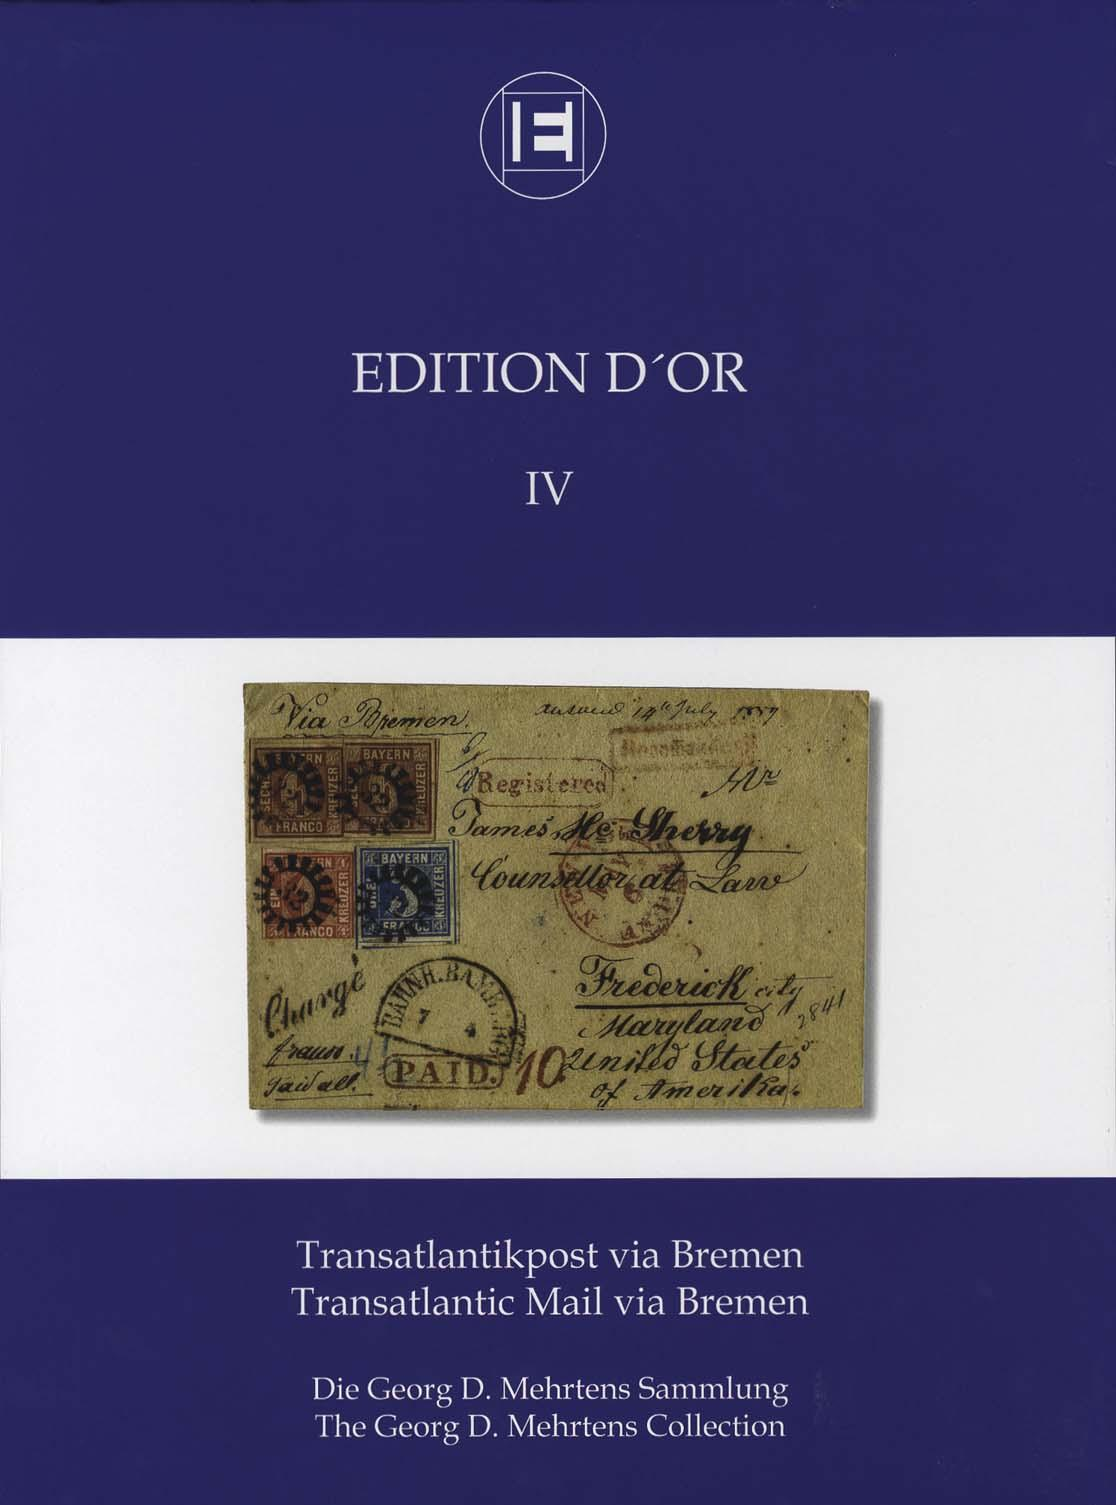 Vol. 4: Transatlantic Mail via Bremen • The Georg D. Mehrtens Collection